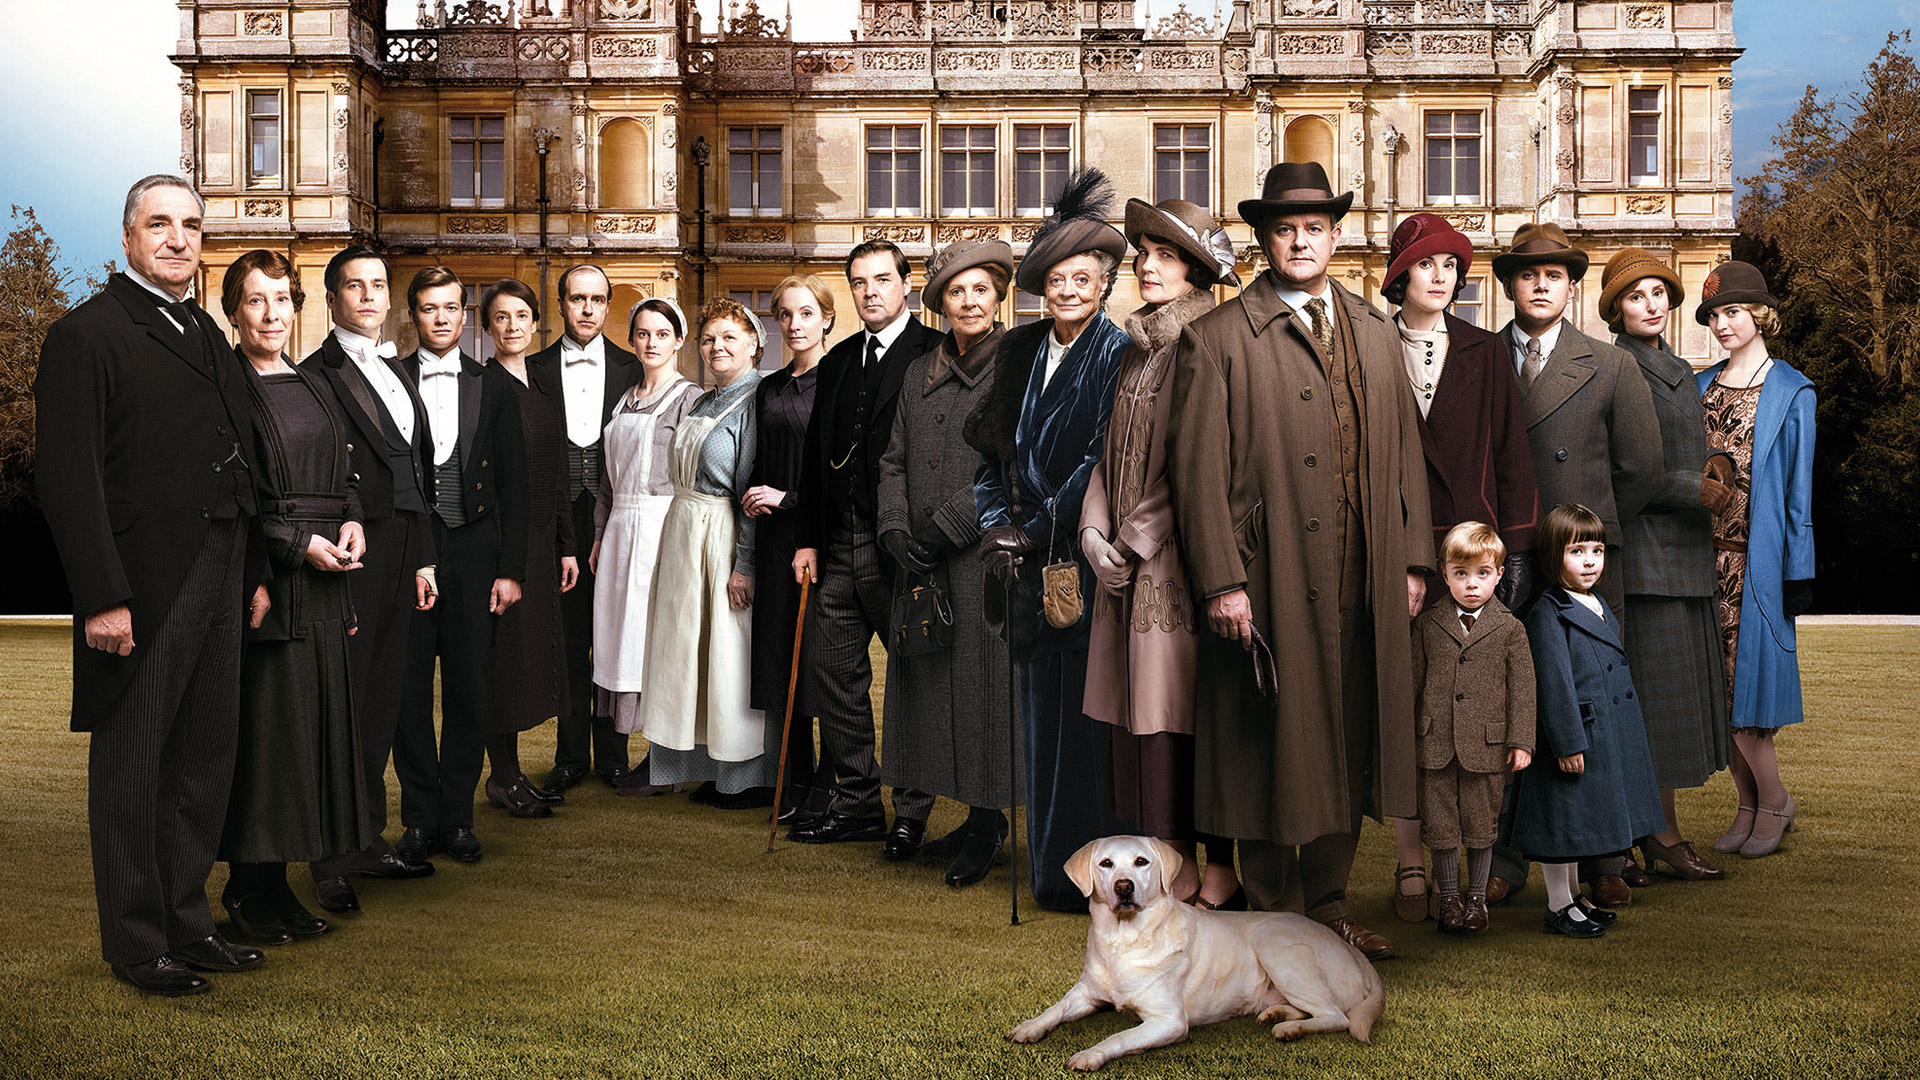 Downton Abbey - After the Tennis, and months after the UK on Seven.  image source - ITV